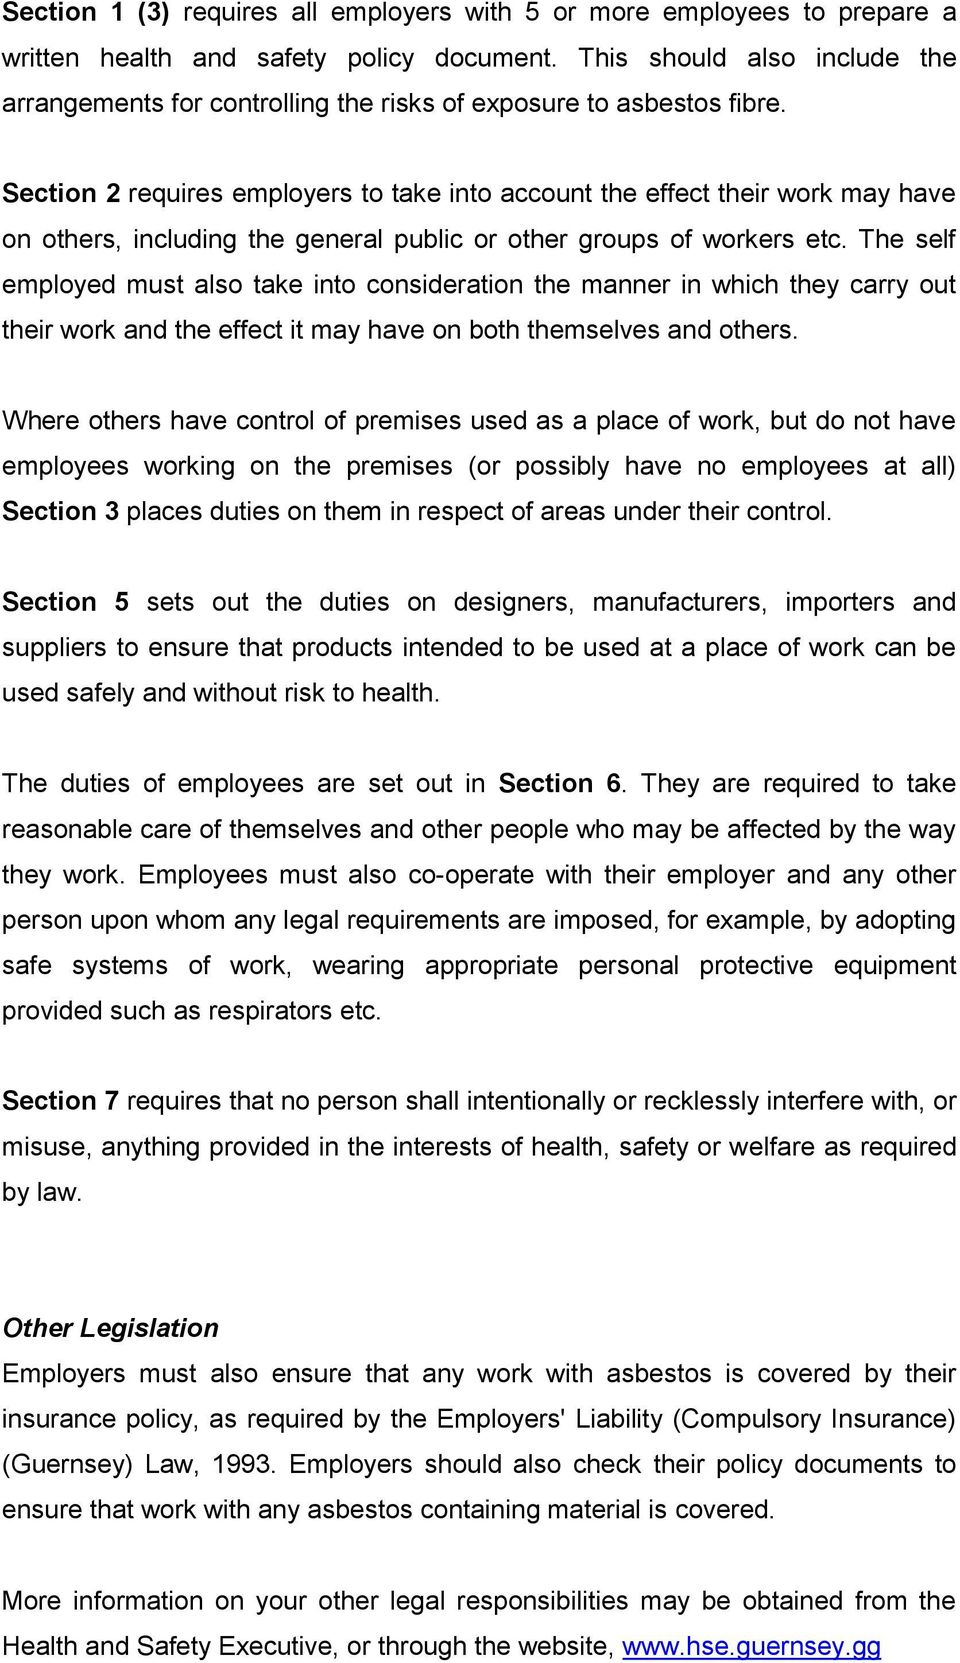 Section 2 requires employers to take into account the effect their work may have on others, including the general public or other groups of workers etc.